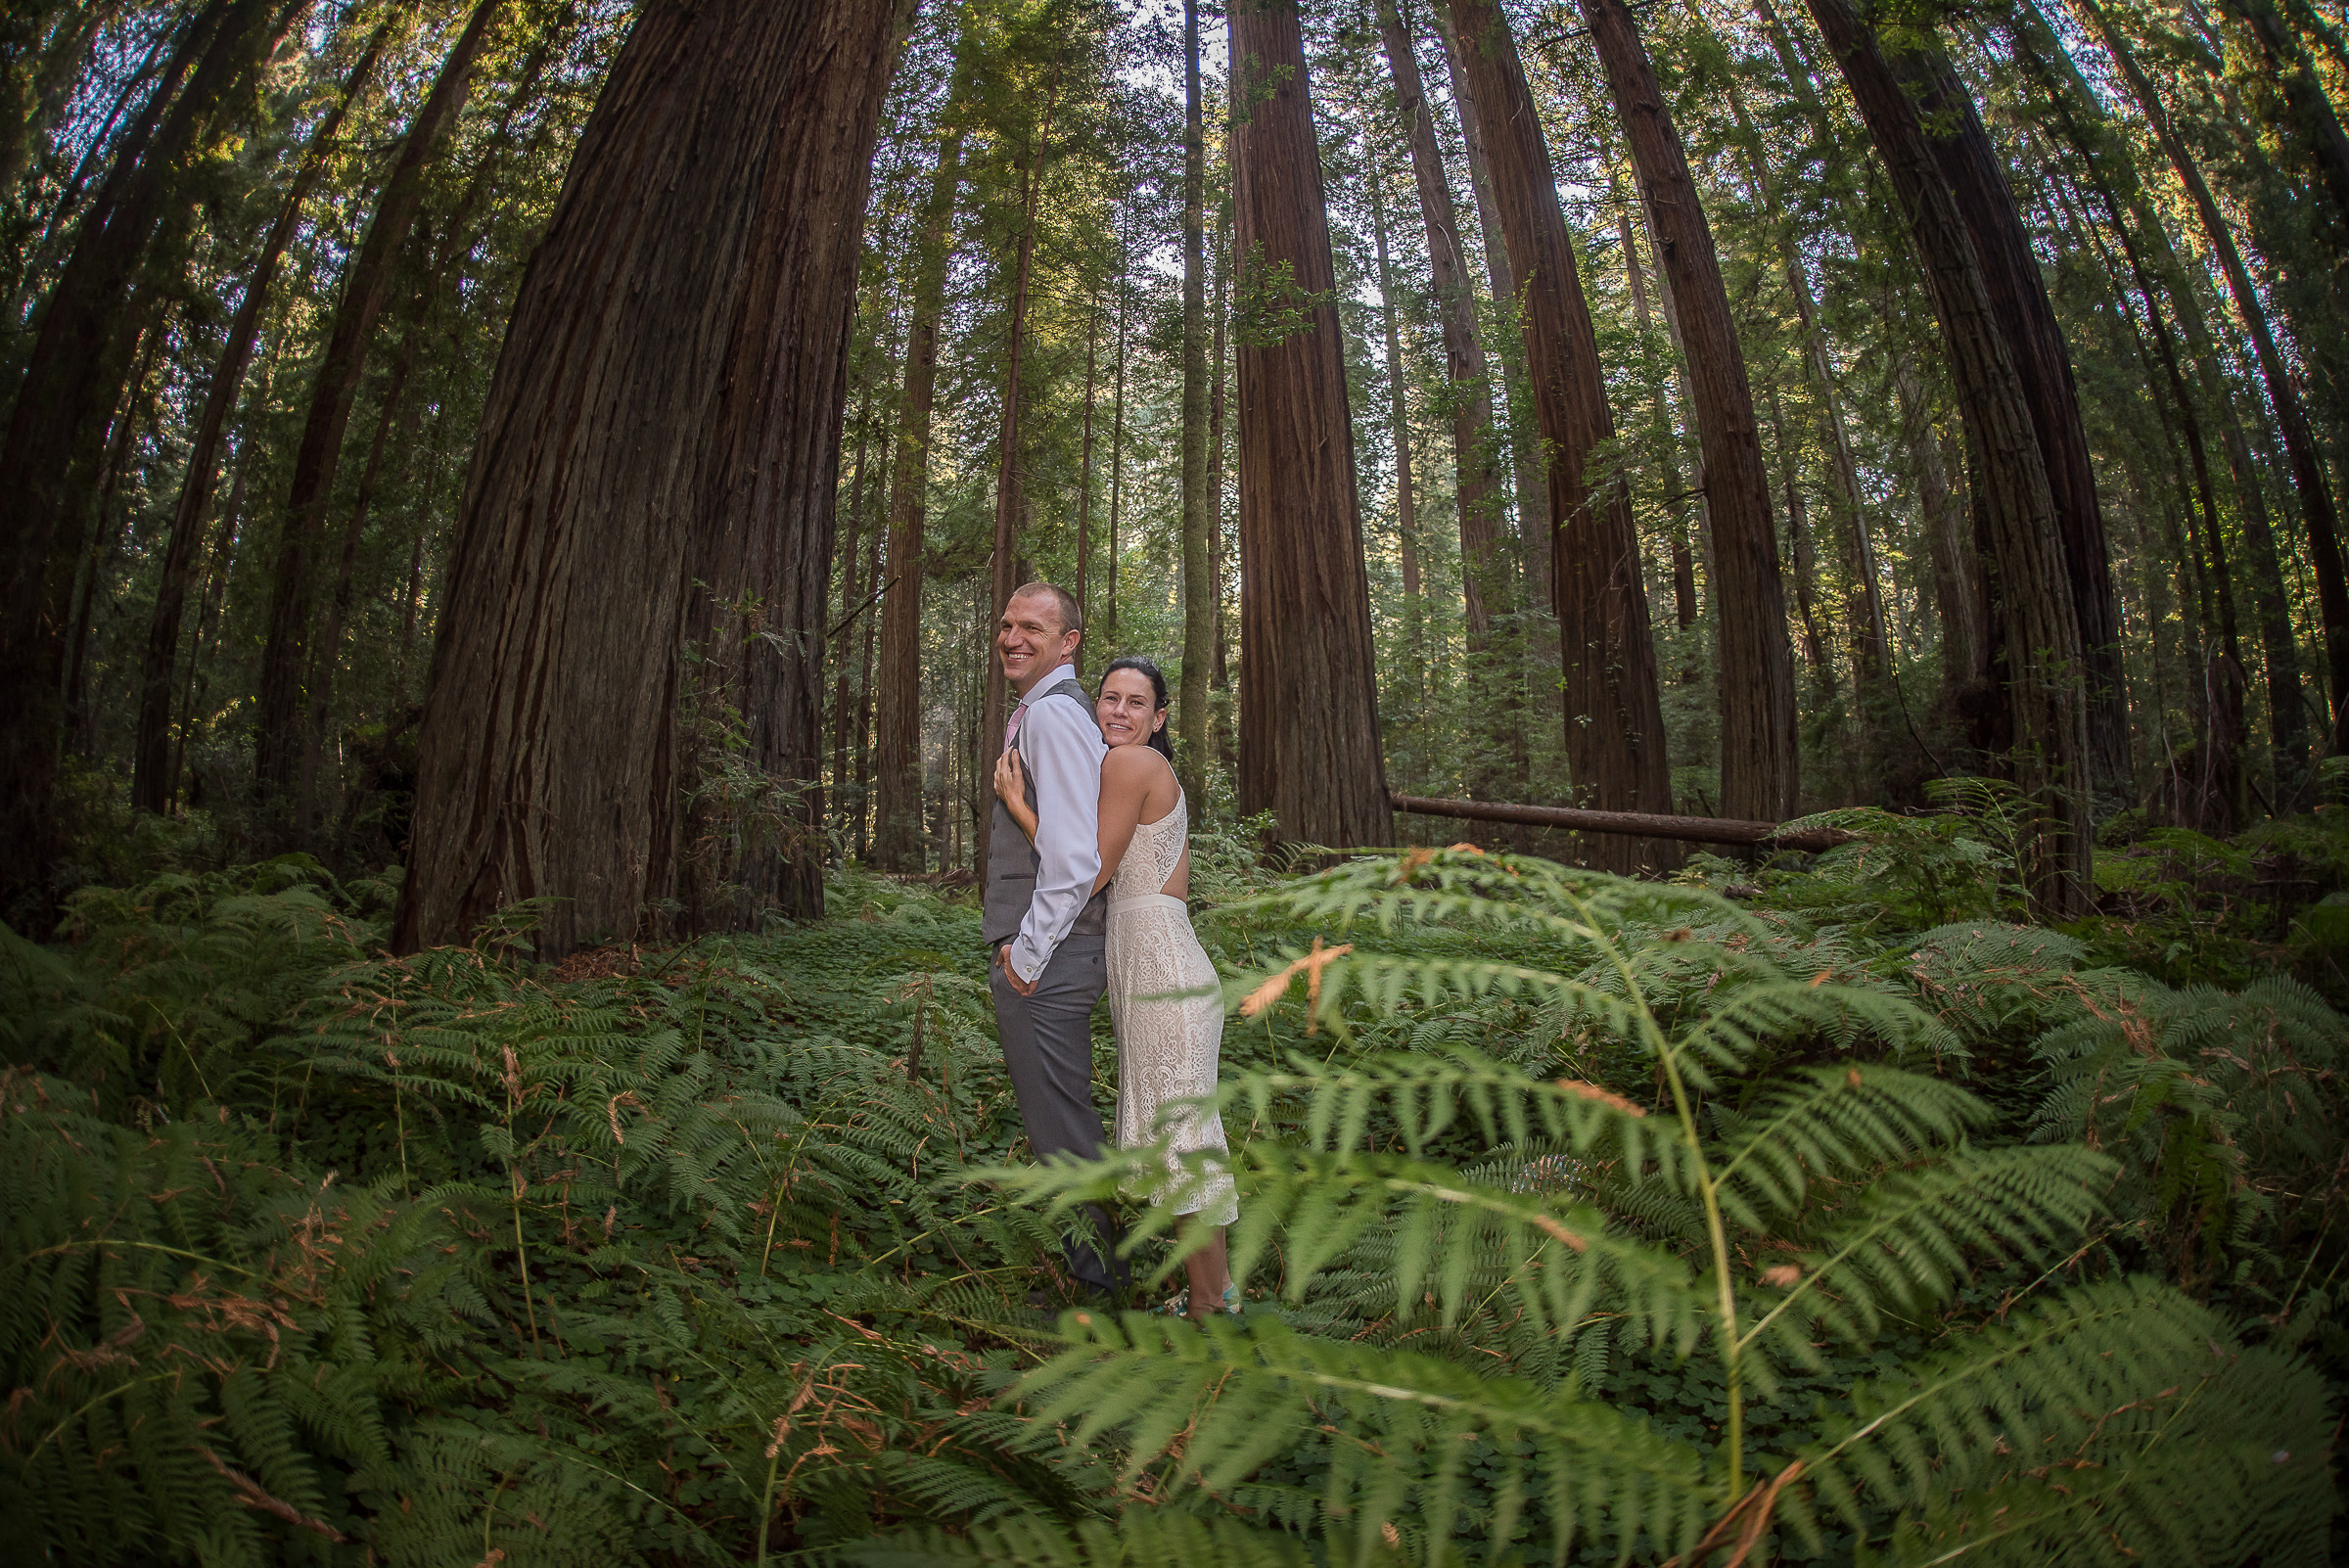 AVENUE OF THE GIANTS MAGICAL ELOPEMENT PARKYS PICS-13.JPG